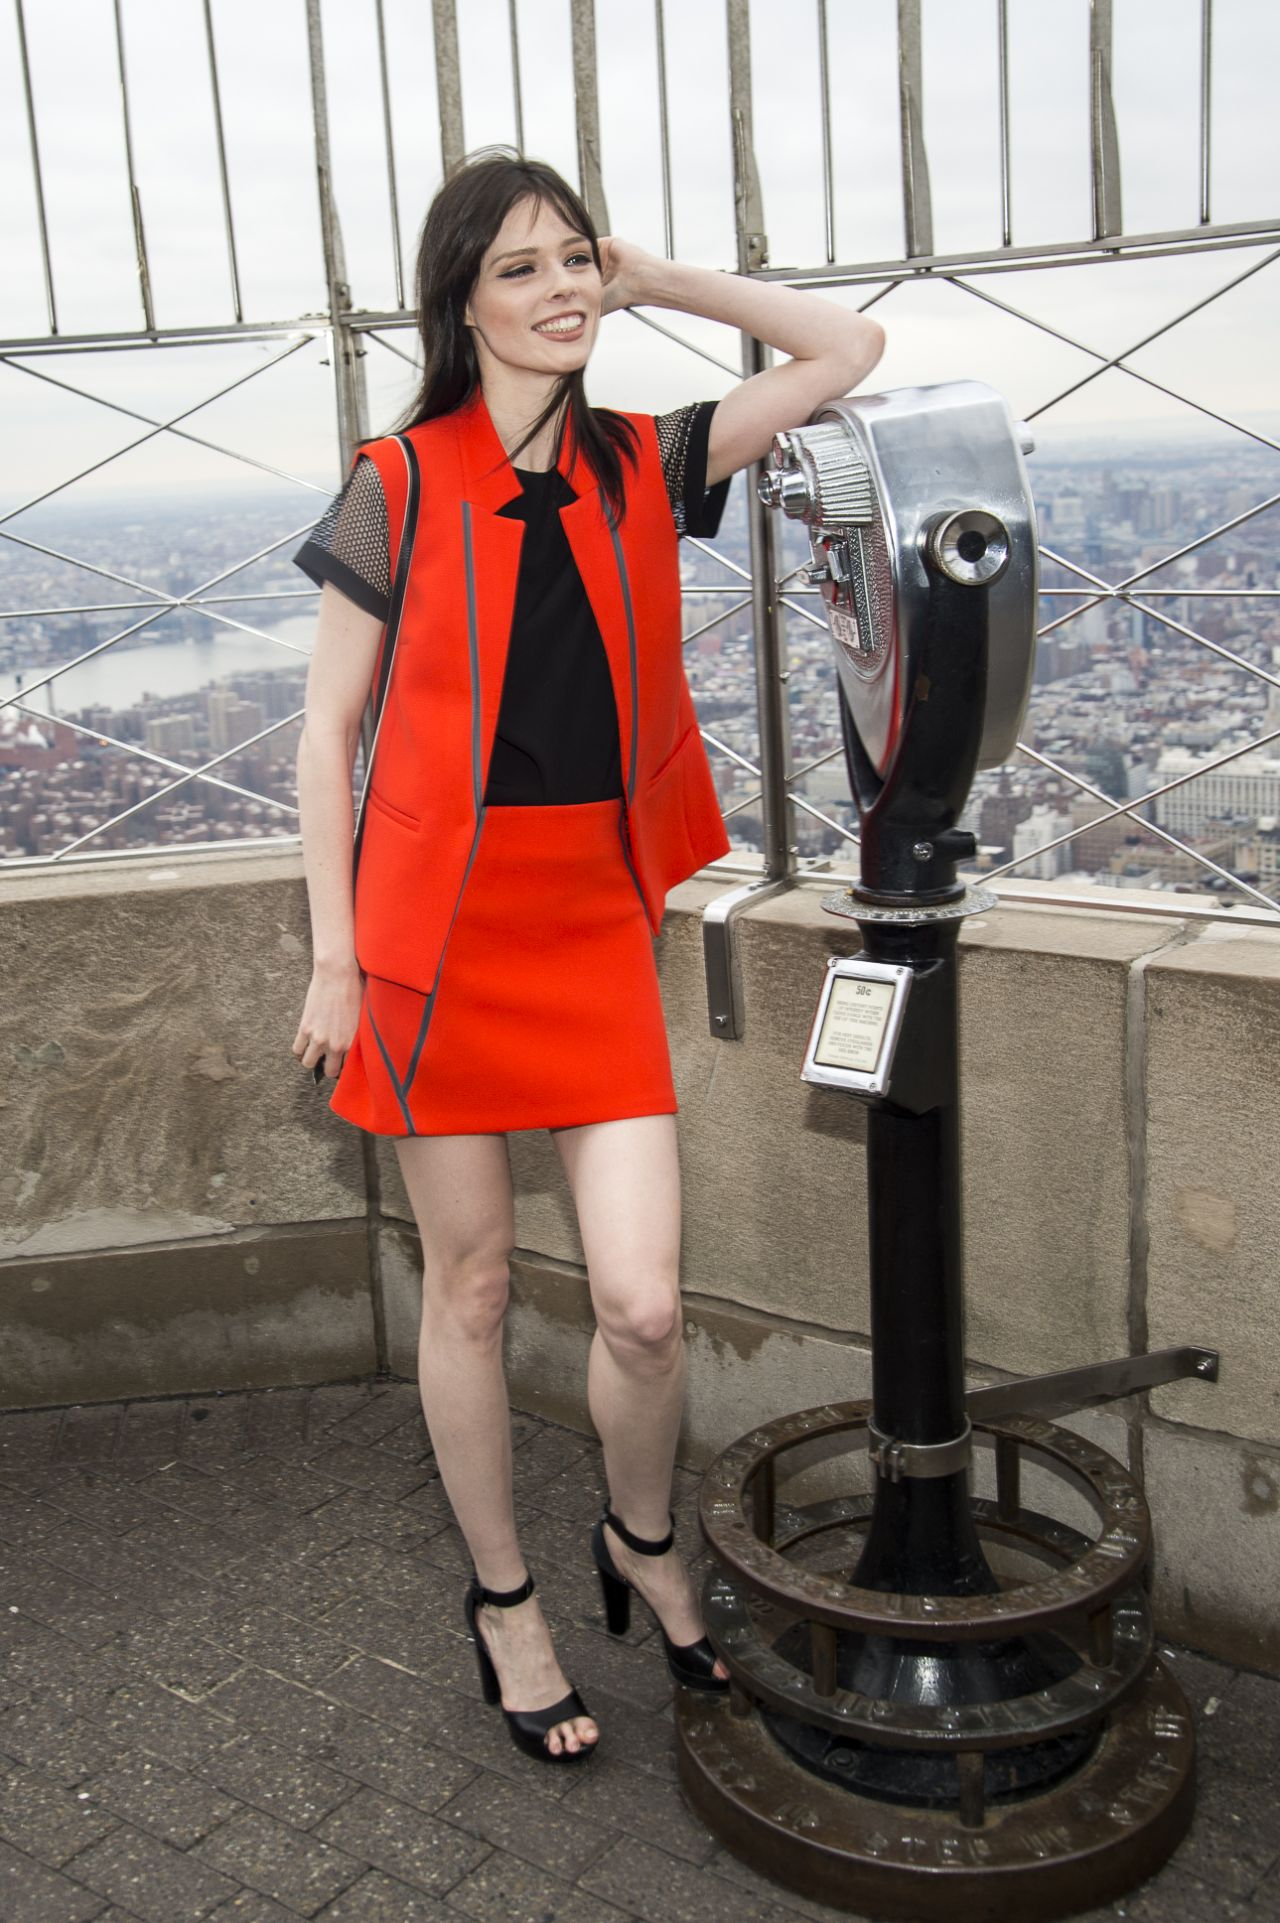 coco-rocha-empire-state-building-2-17-2016-4